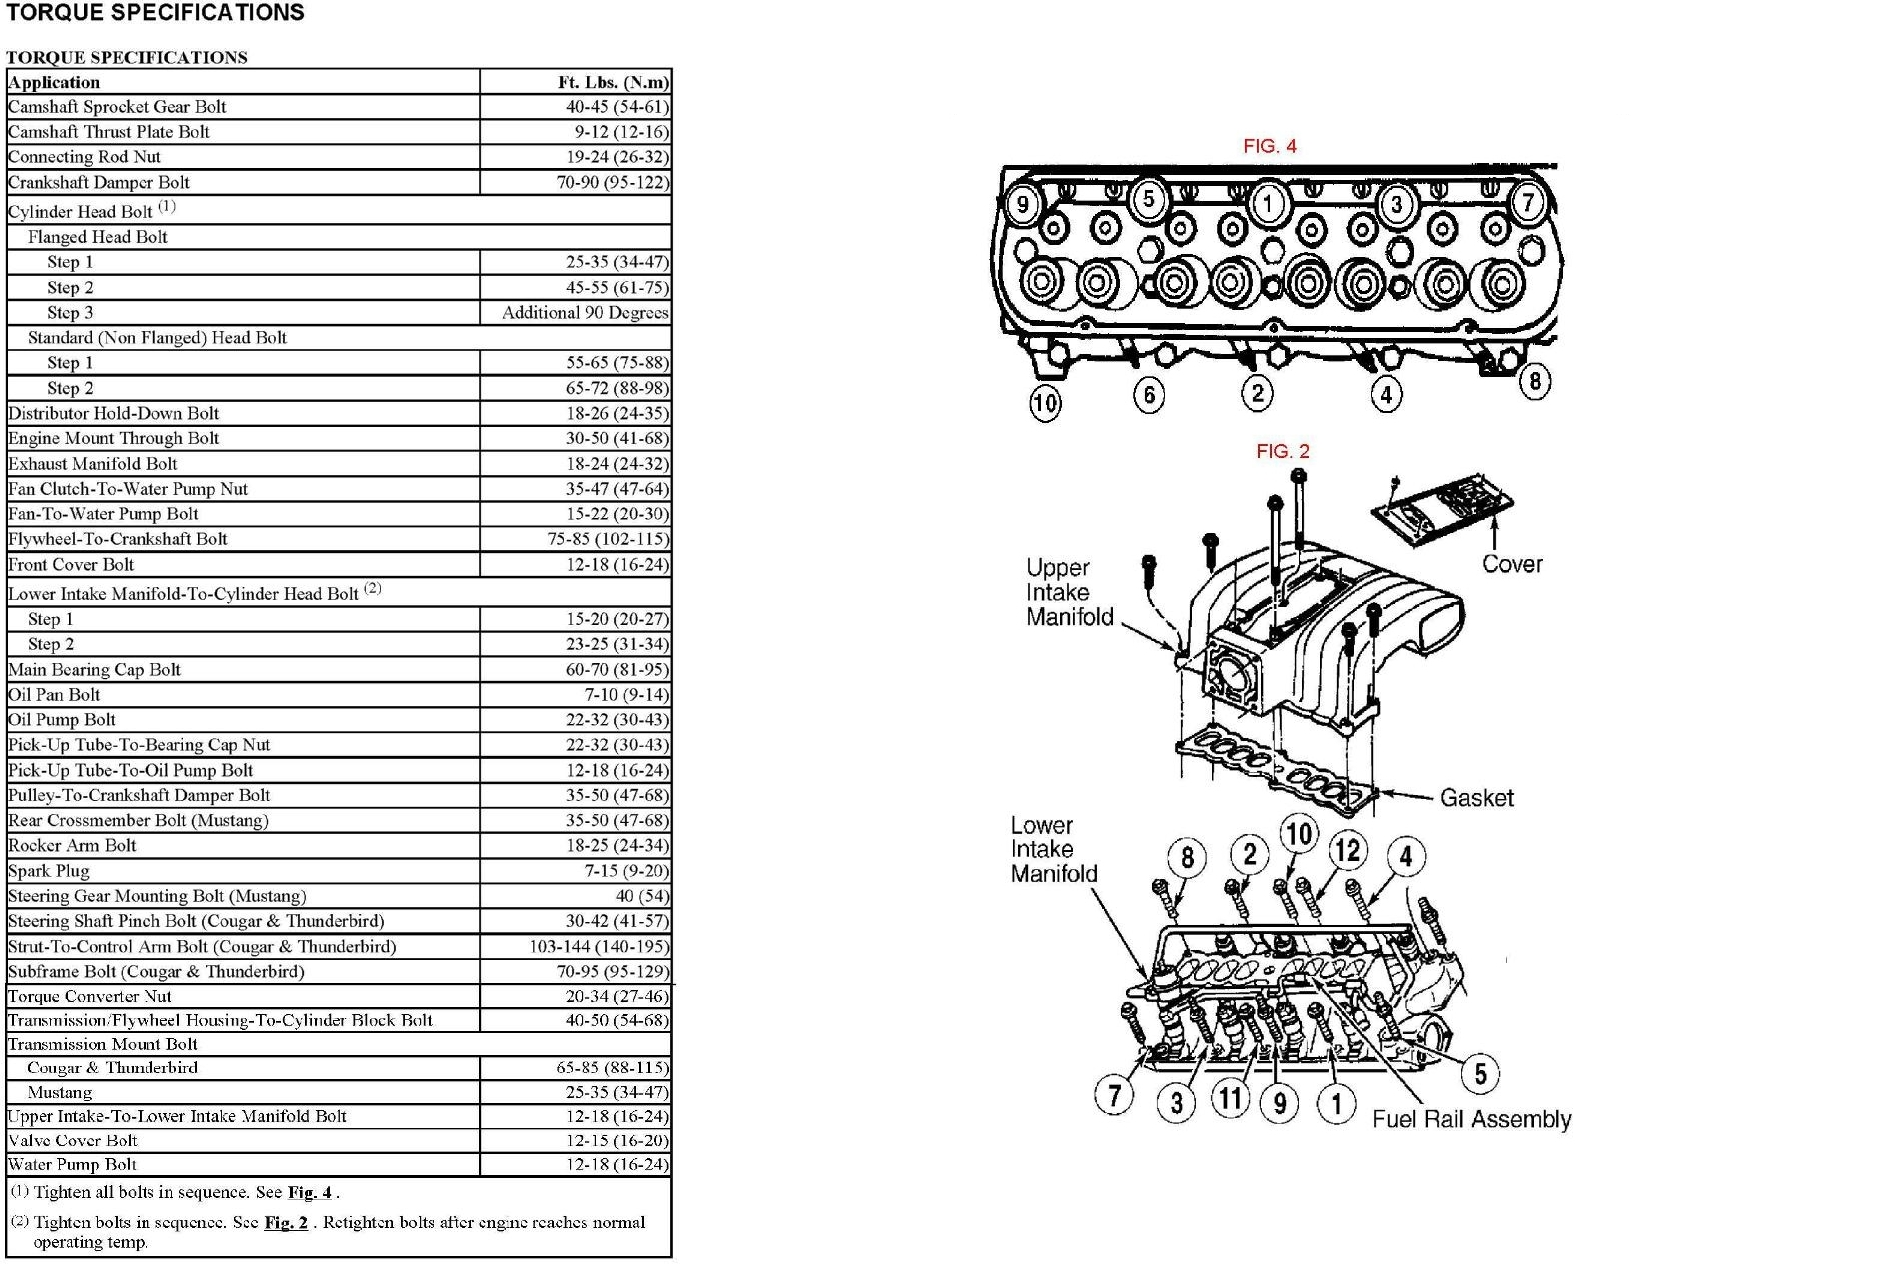 4a133 Volvo Gmwt Wg42t Whgm Volvo Wg42t Replace together with Volvo S80 Rear Suspension Diagram furthermore Volvo 740 Front End Diagram furthermore Kia Sportage Radio Wiring Diagram likewise P 0900c1528008c713. on 2006 volvo xc90 wiring diagram